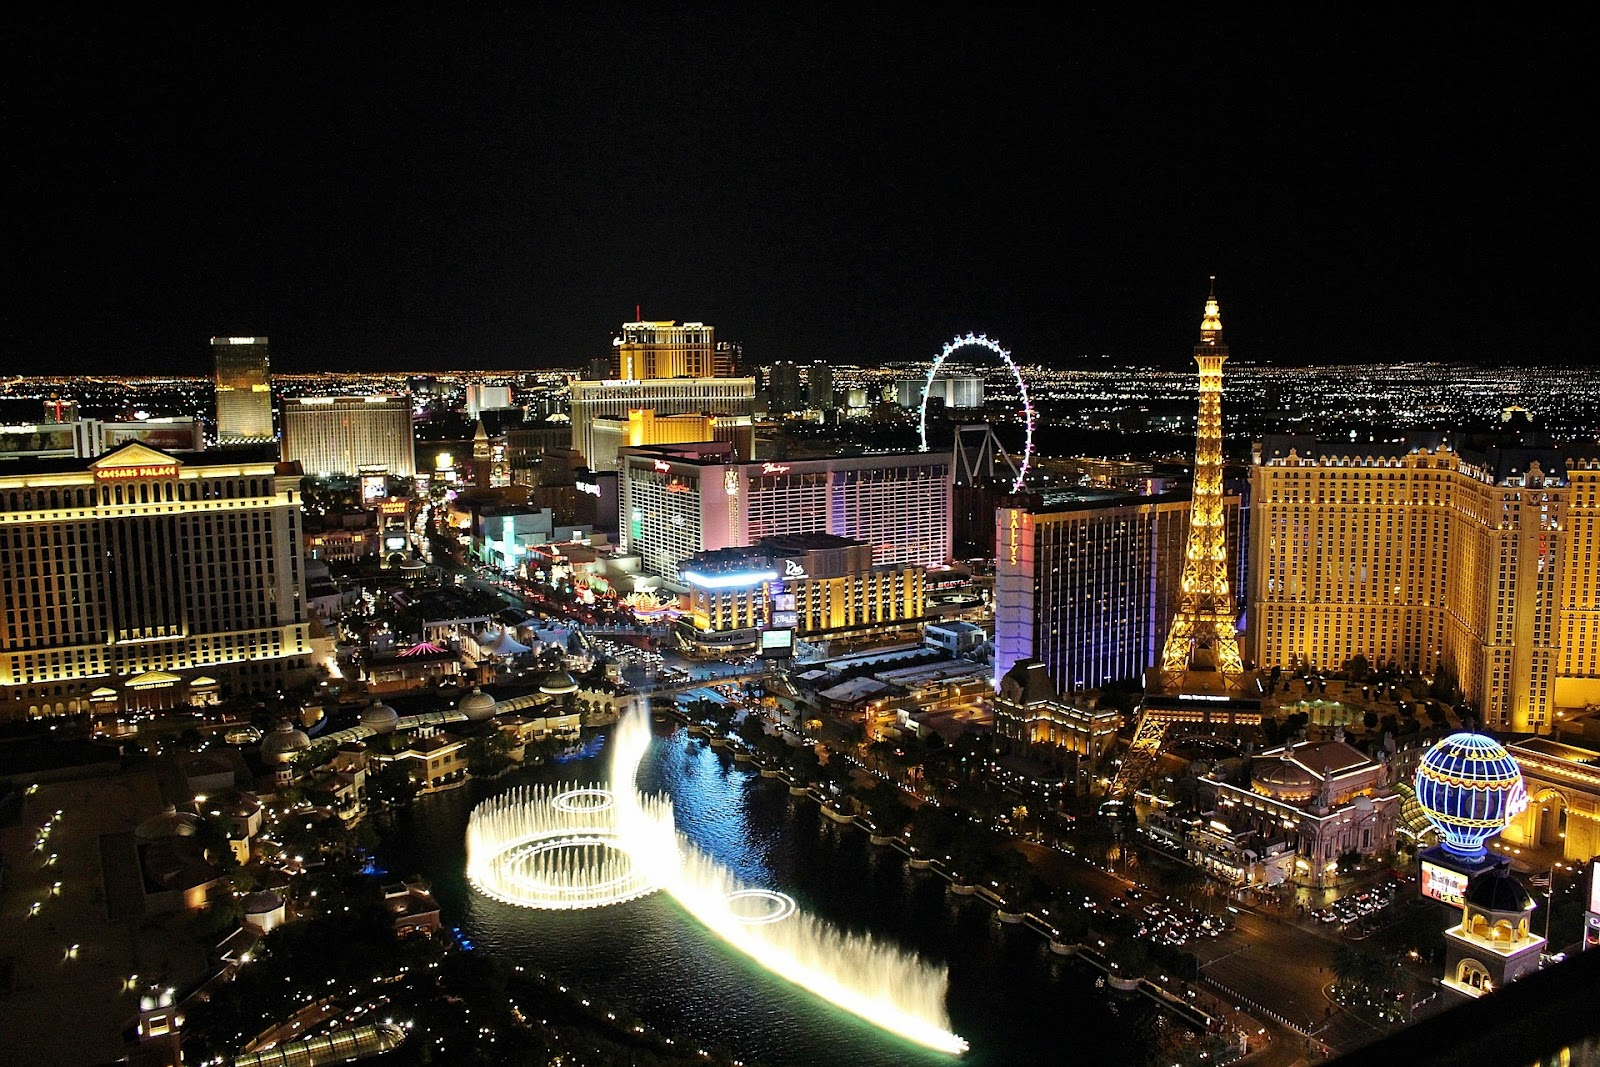 the strip in las vegas seen at night aerial view of fountain show and large hotels in nevada